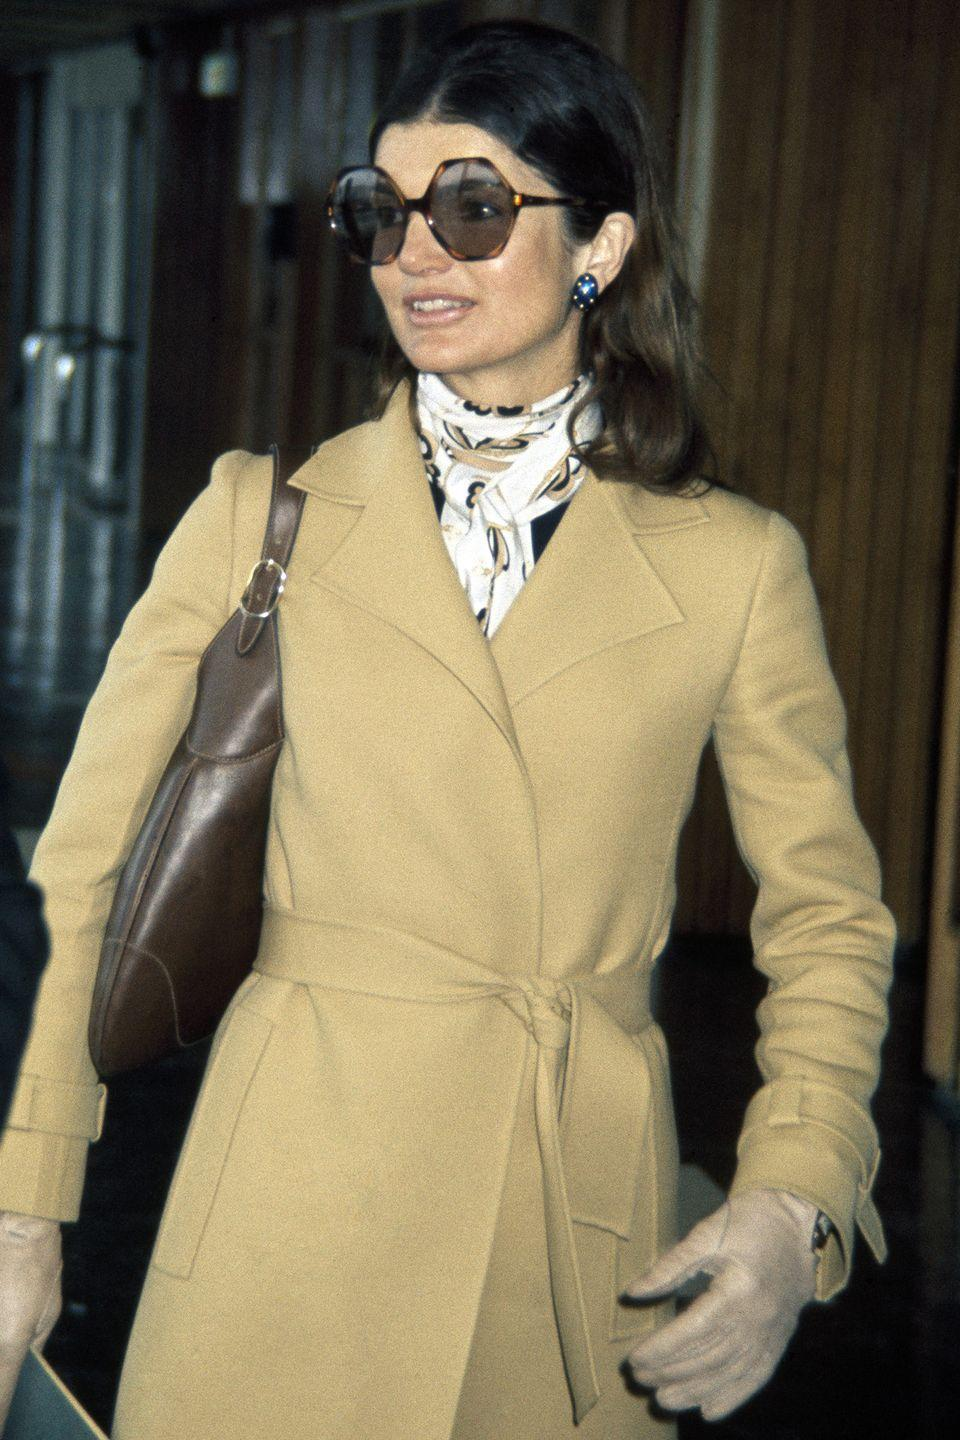 <p>Taking the '70s by storm, Jackie O was frequently seen wearing oversized sunglasses that were the perfect touch to her sleek style. </p>